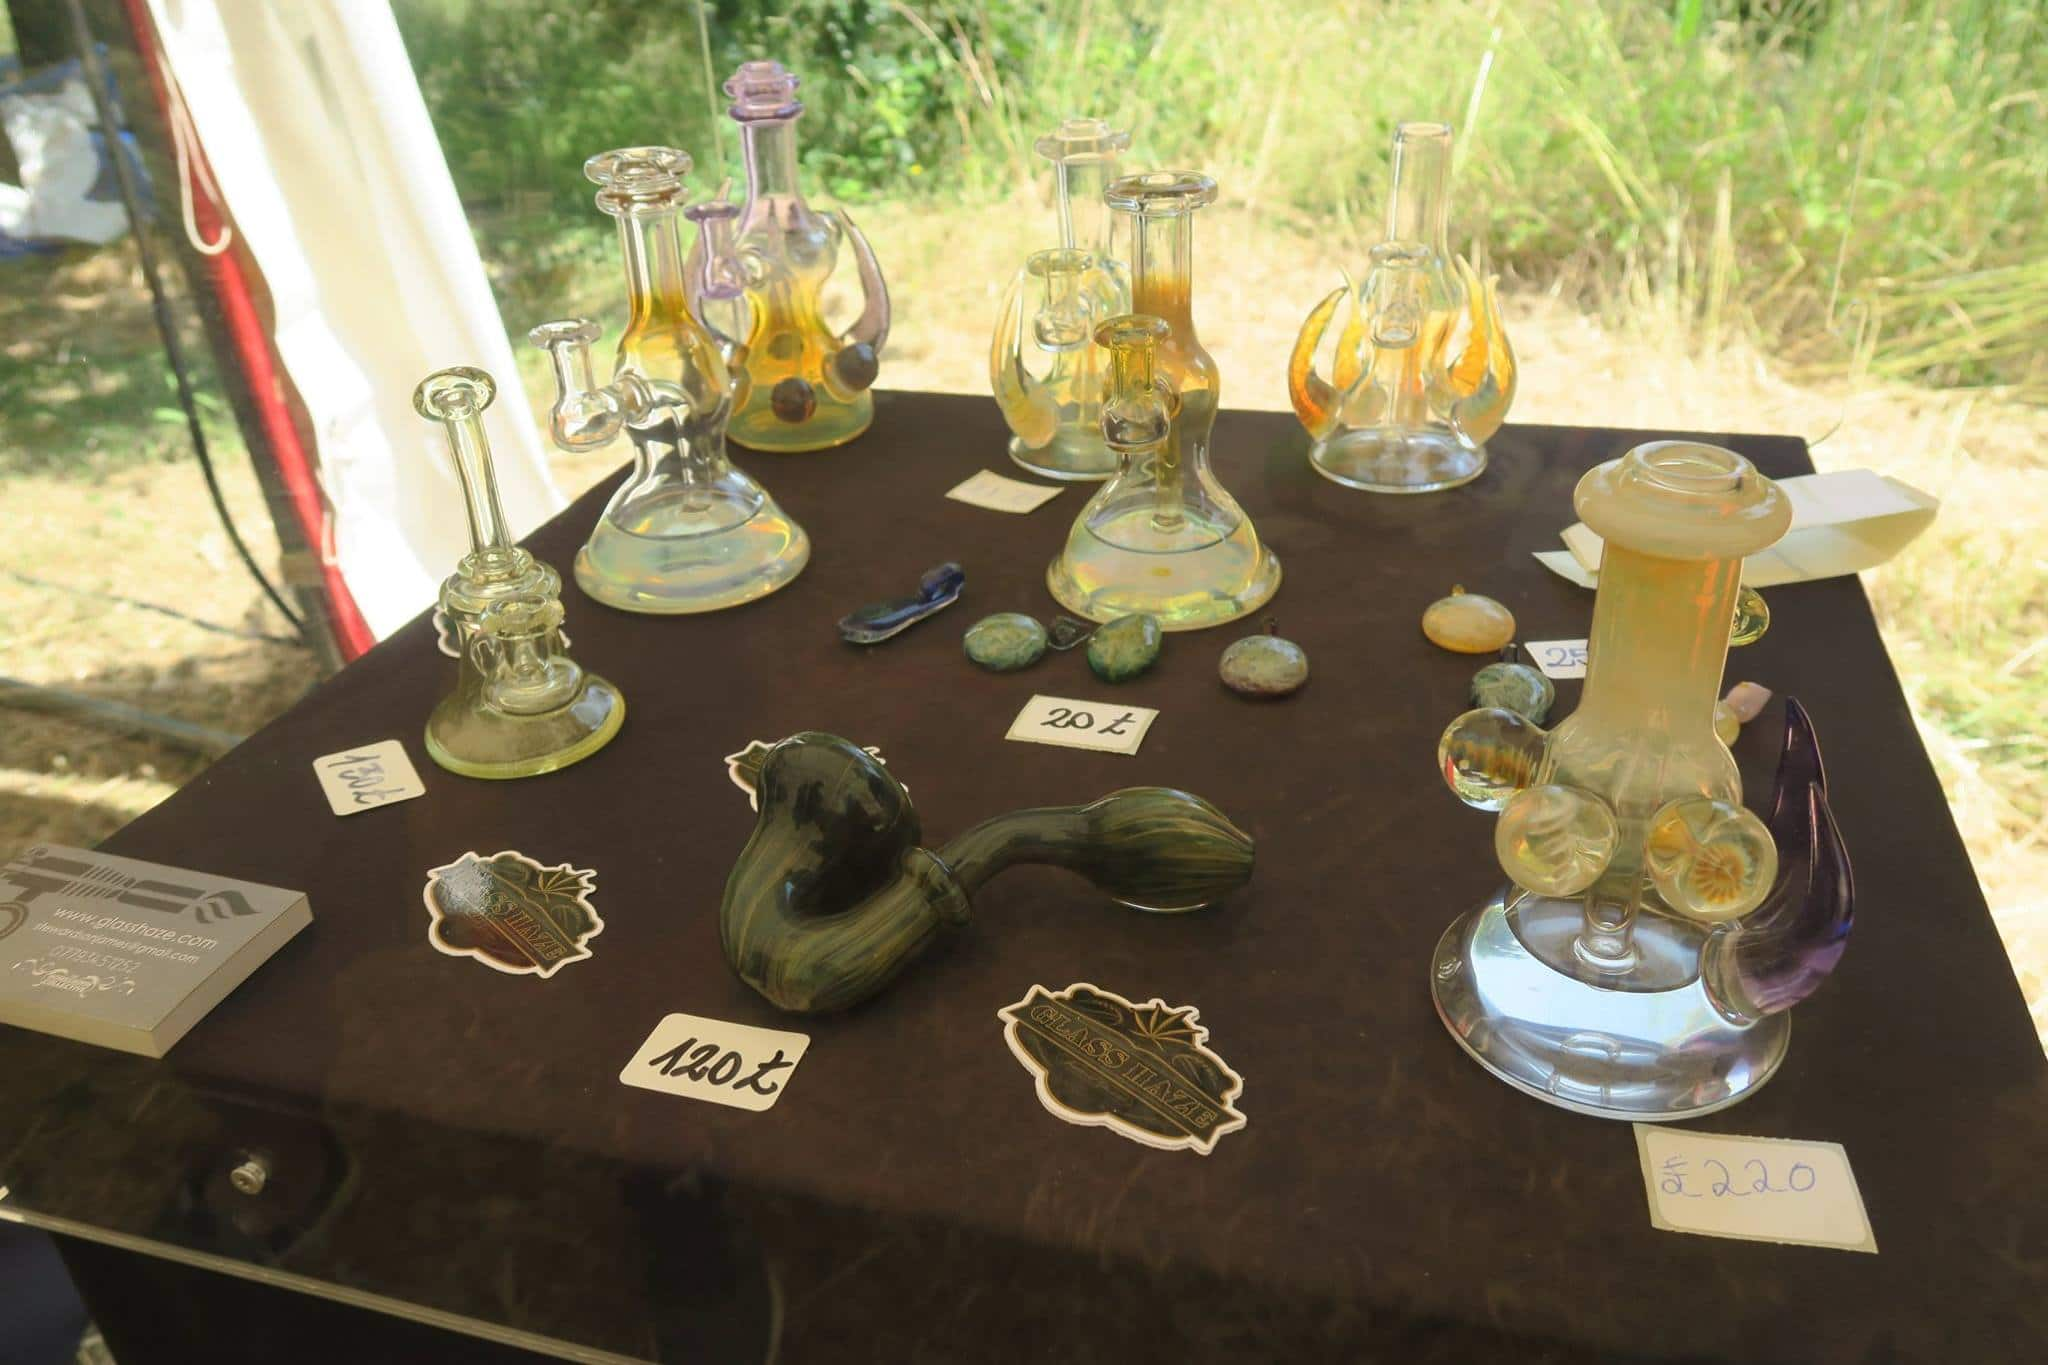 Borofest, We attended Borofest Glass Festival 2018